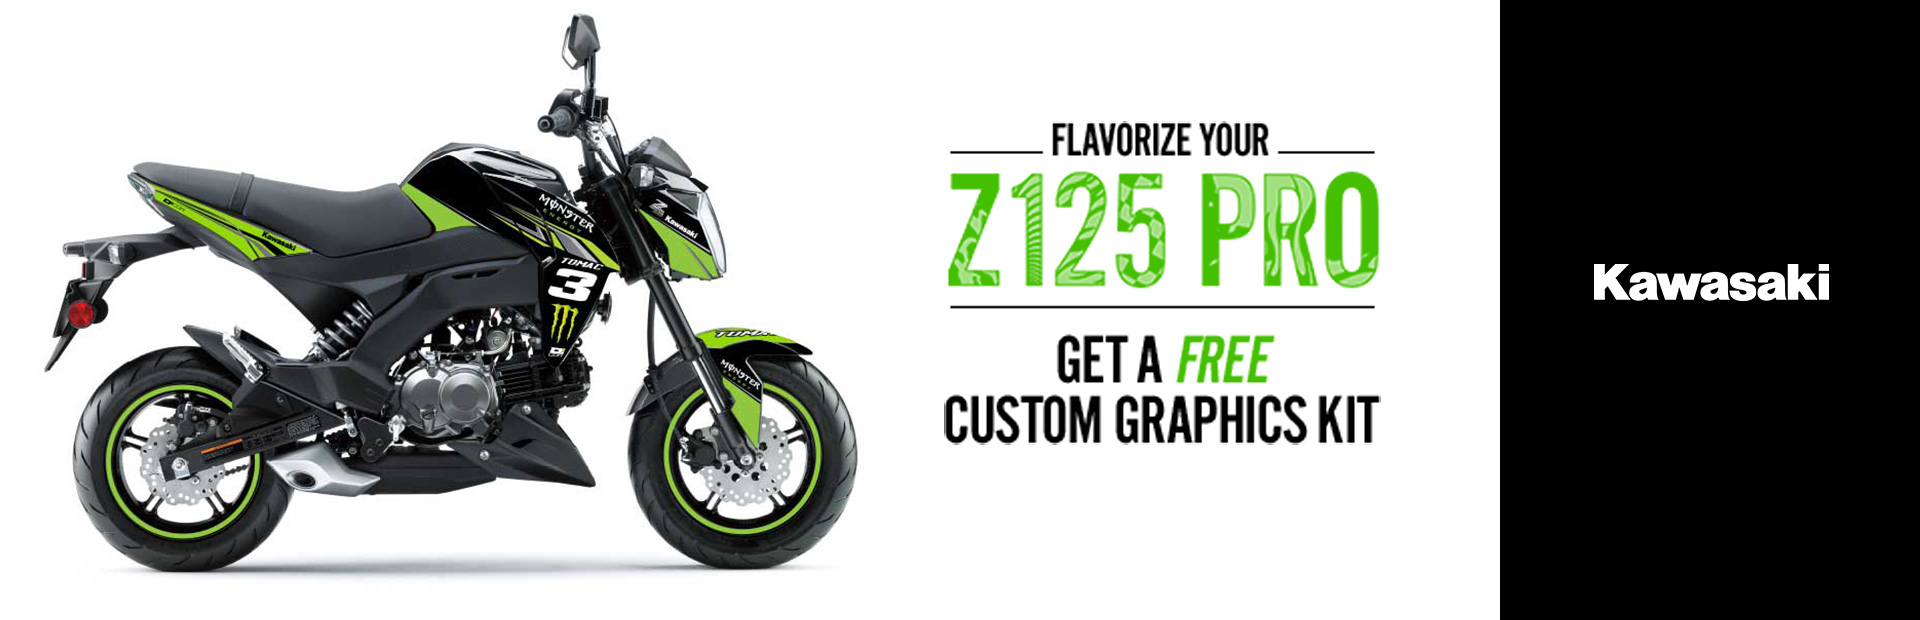 Kawasaki: Flavorize Your Z125 Pro - Free Custom Graphics Kit